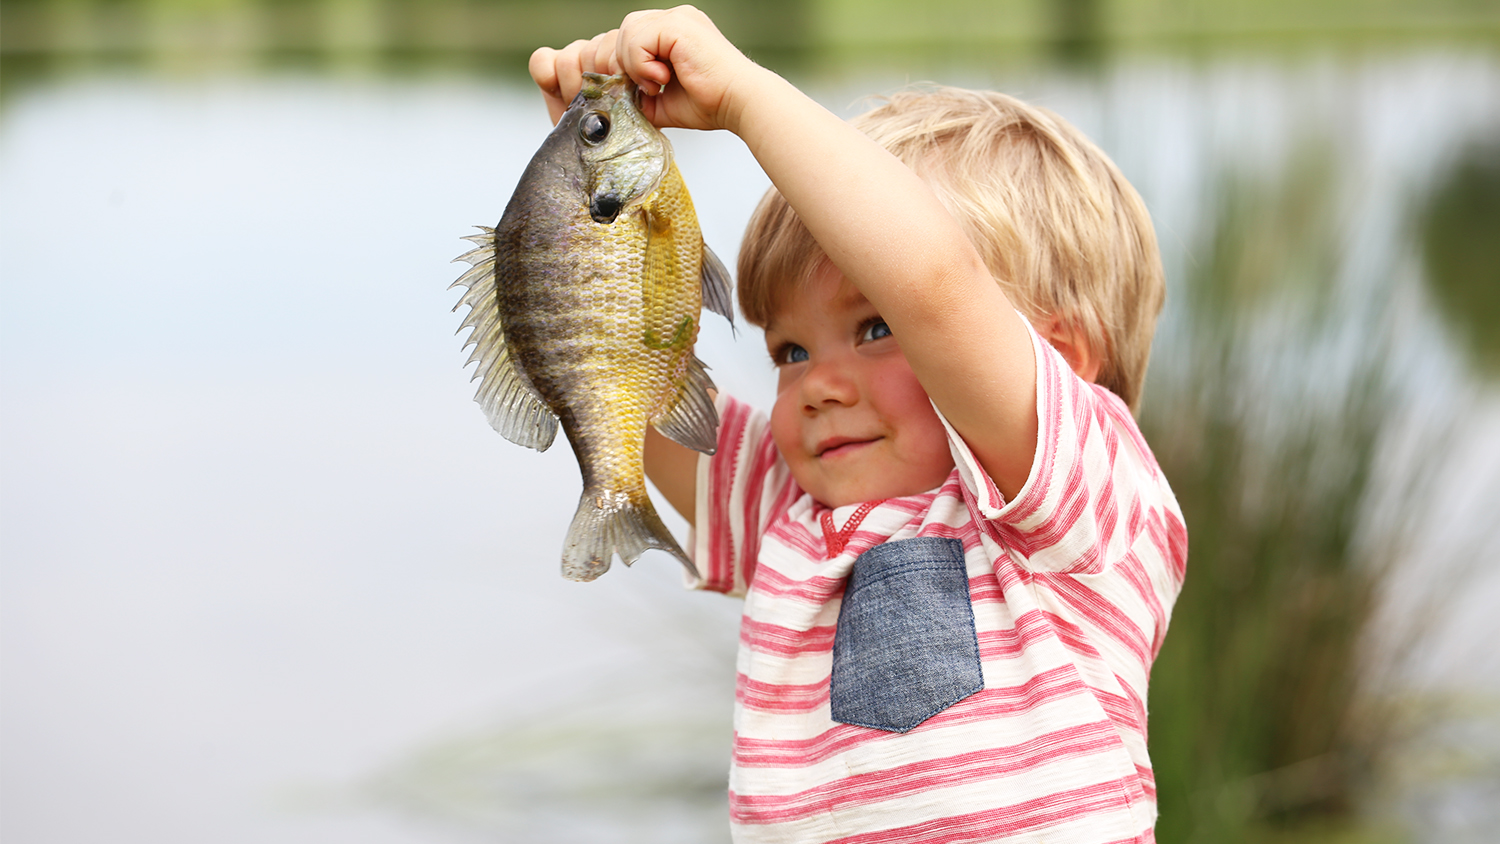 How Are You Celebrating National Hunting and Fishing Day?